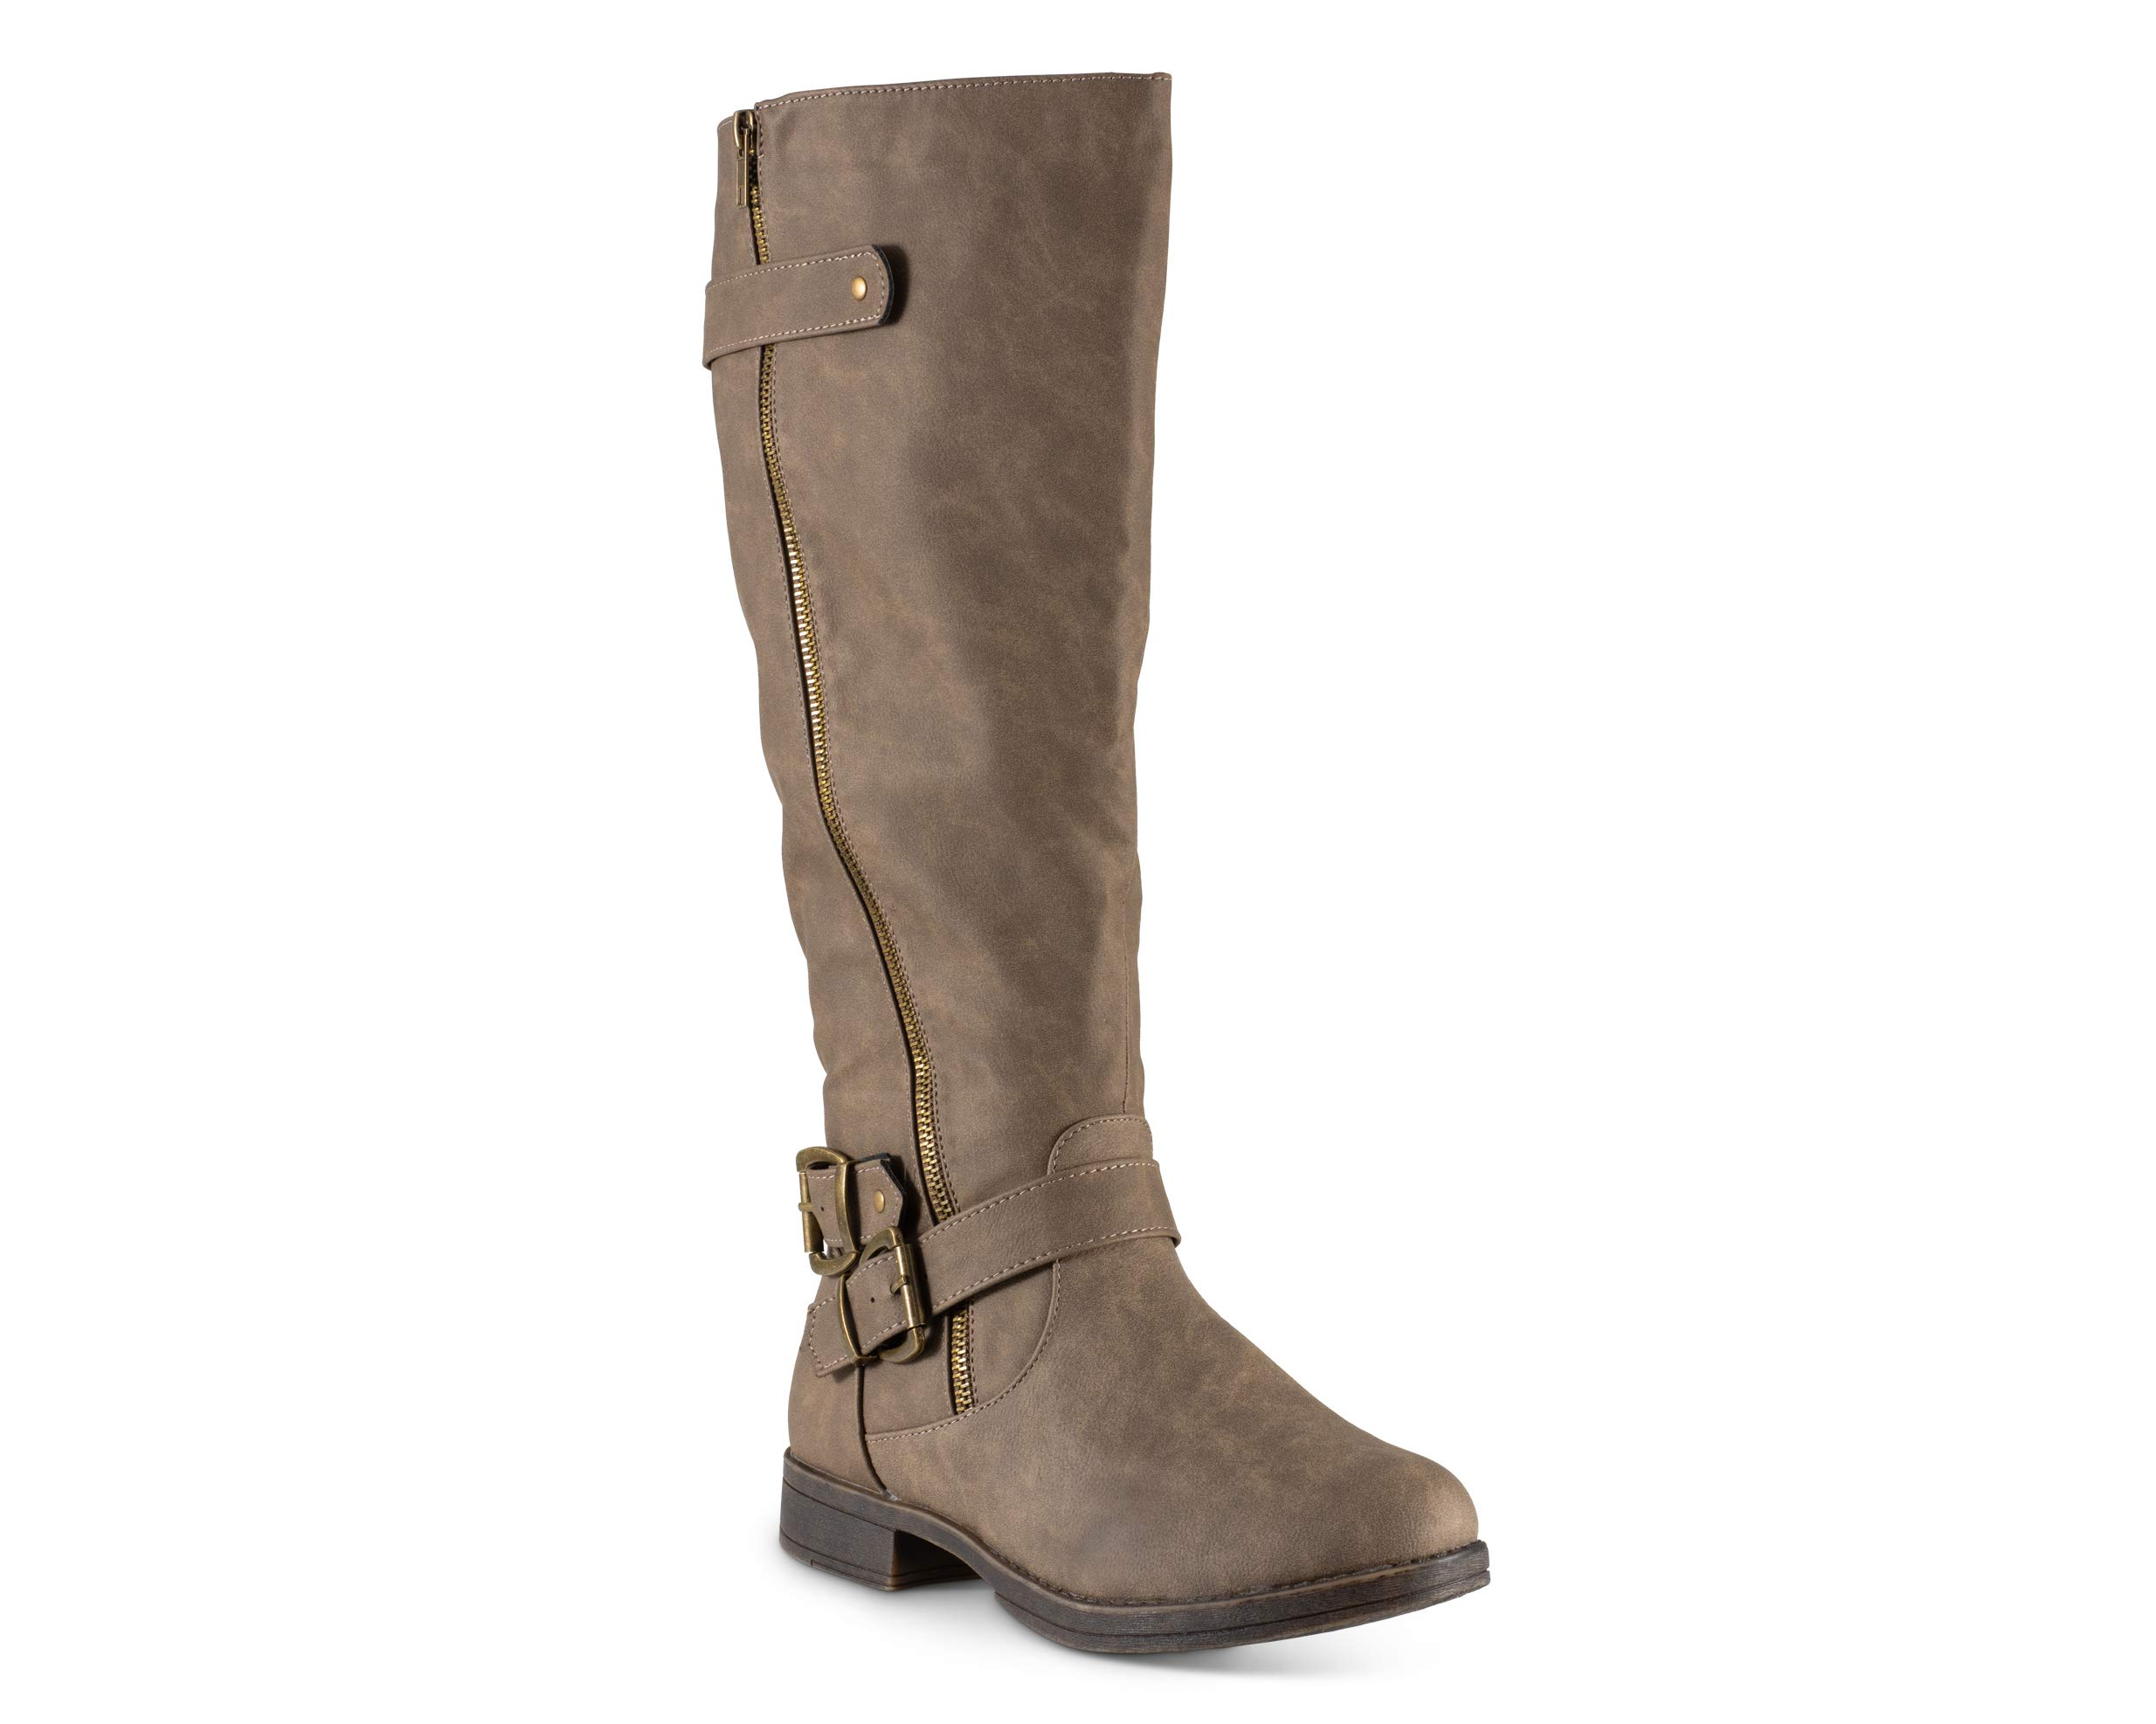 Twisted Women's Amira Wide Width Asymetrical Zip-Up Knee High Riding Boot- Mocha, Size 8